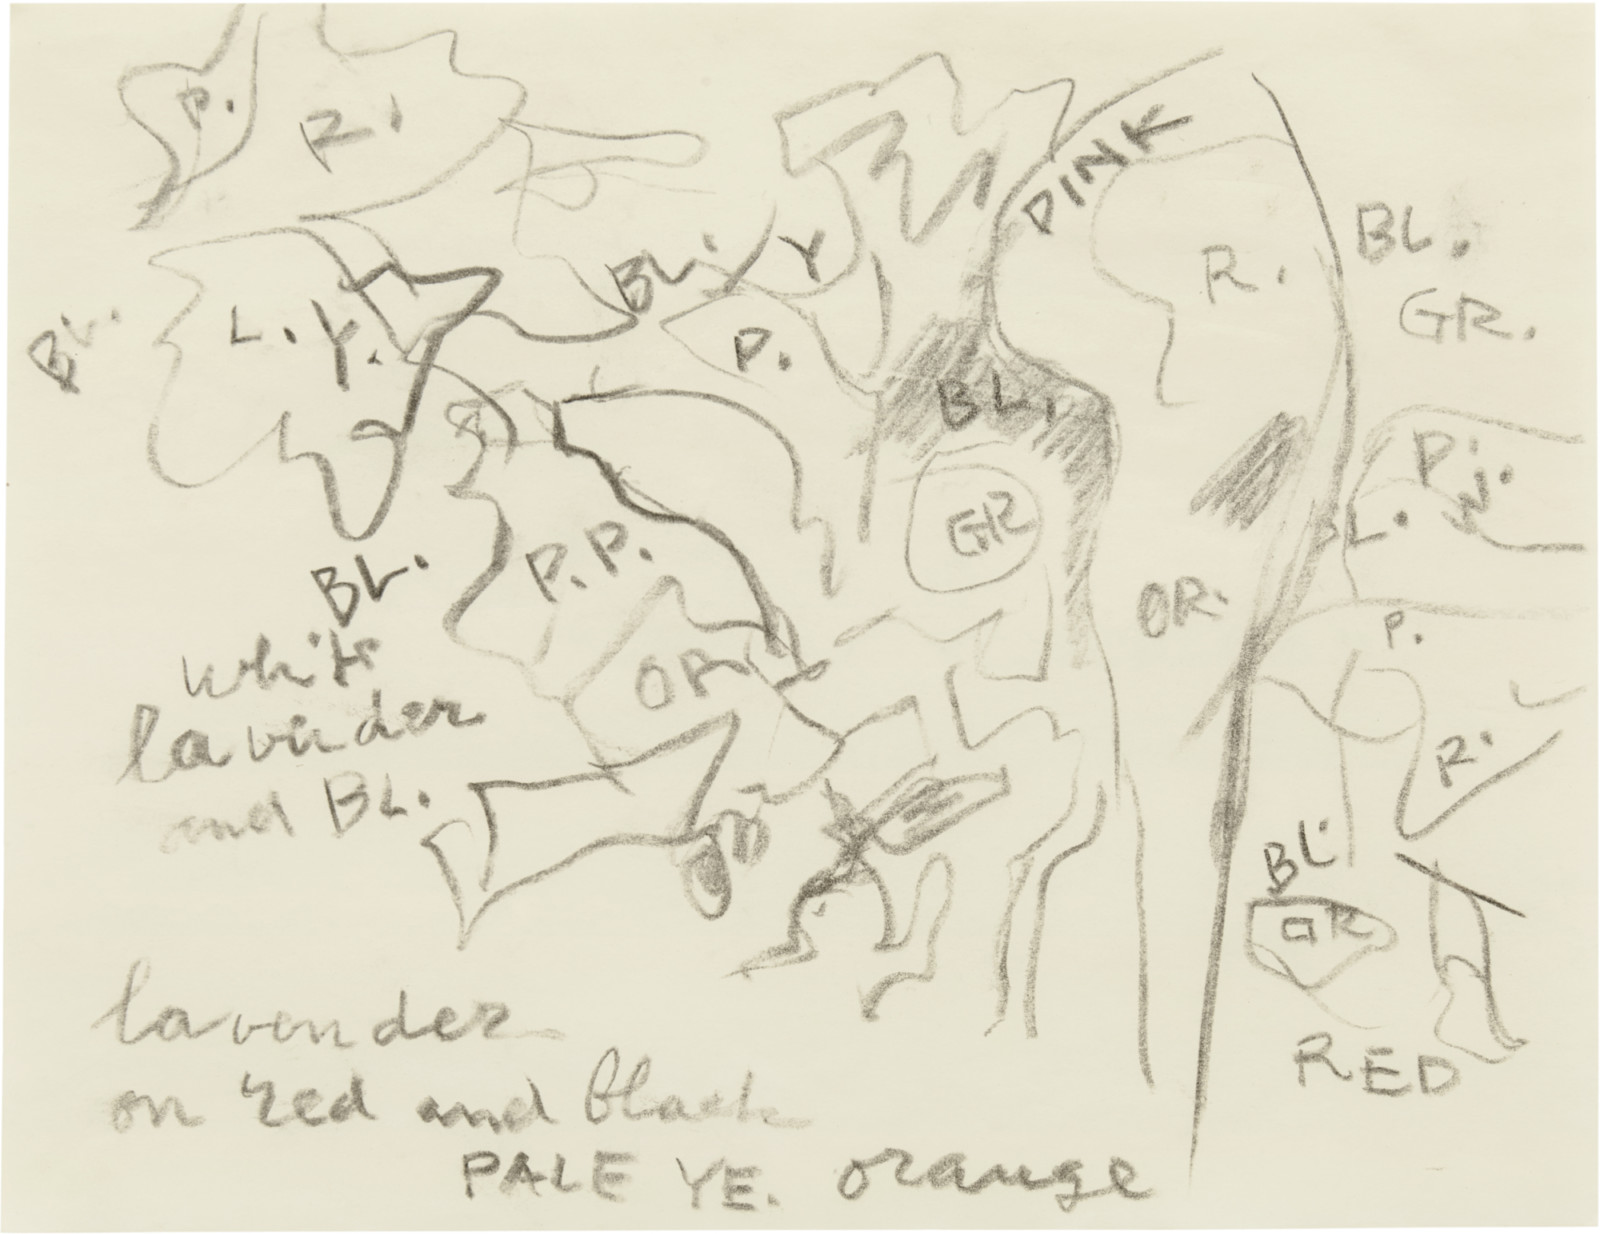 Drawing, dated c. 1975